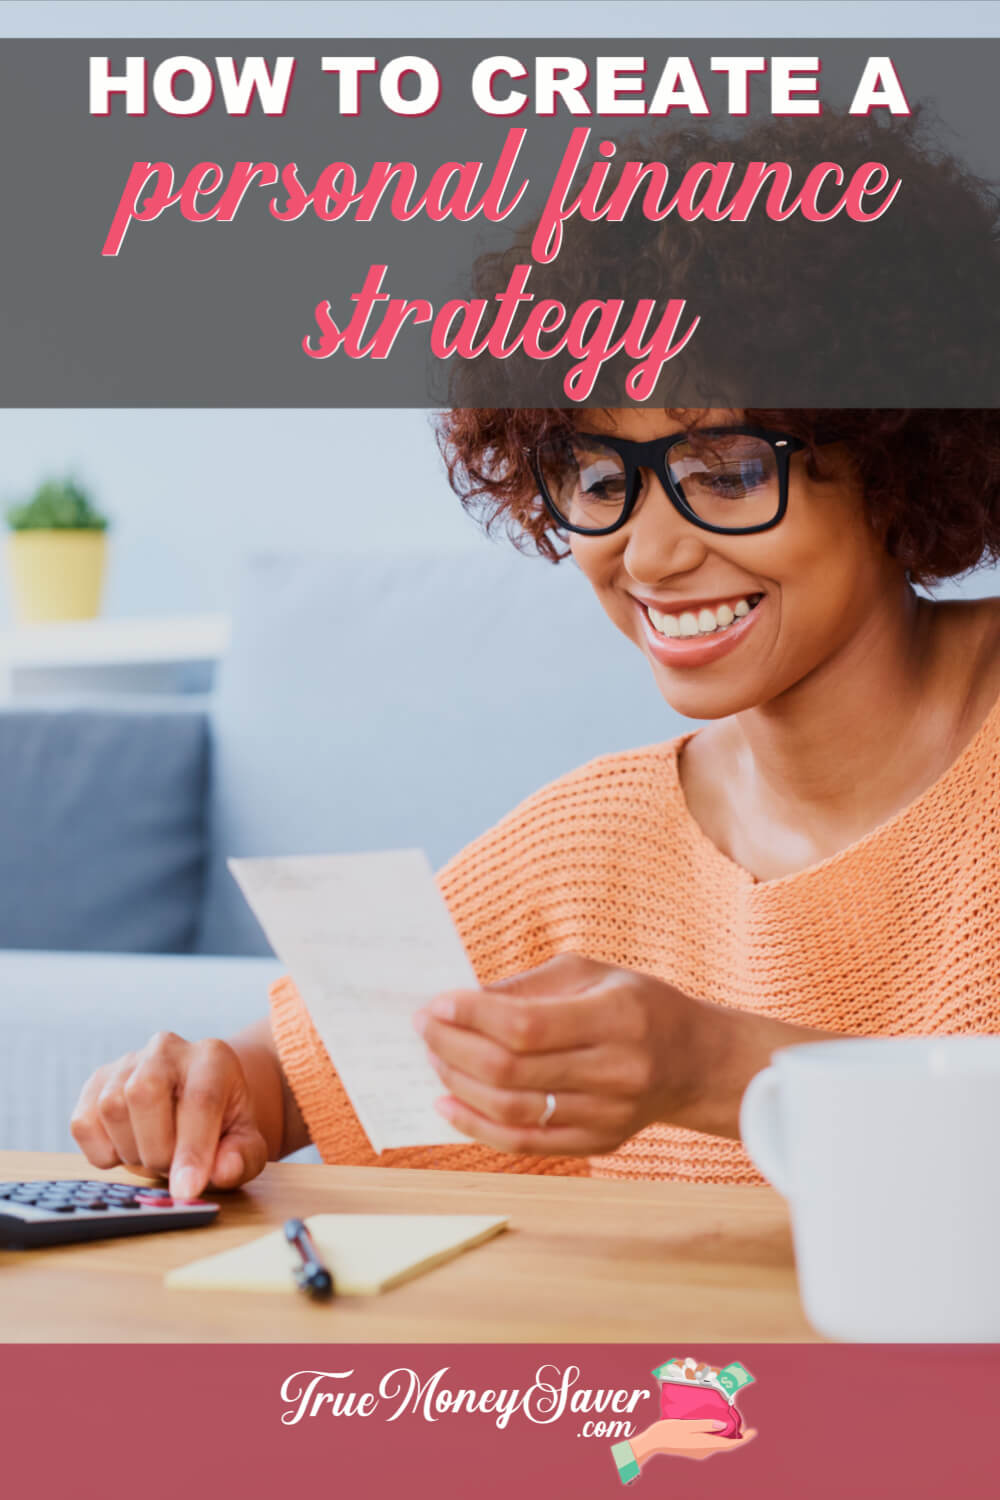 If you\'re in need of a Personal Finance Strategy, then use these personal finance tips to get your finances in order. Use these personal finance planning tips to prioritize your finances with my personal finance advice to get ahead. 